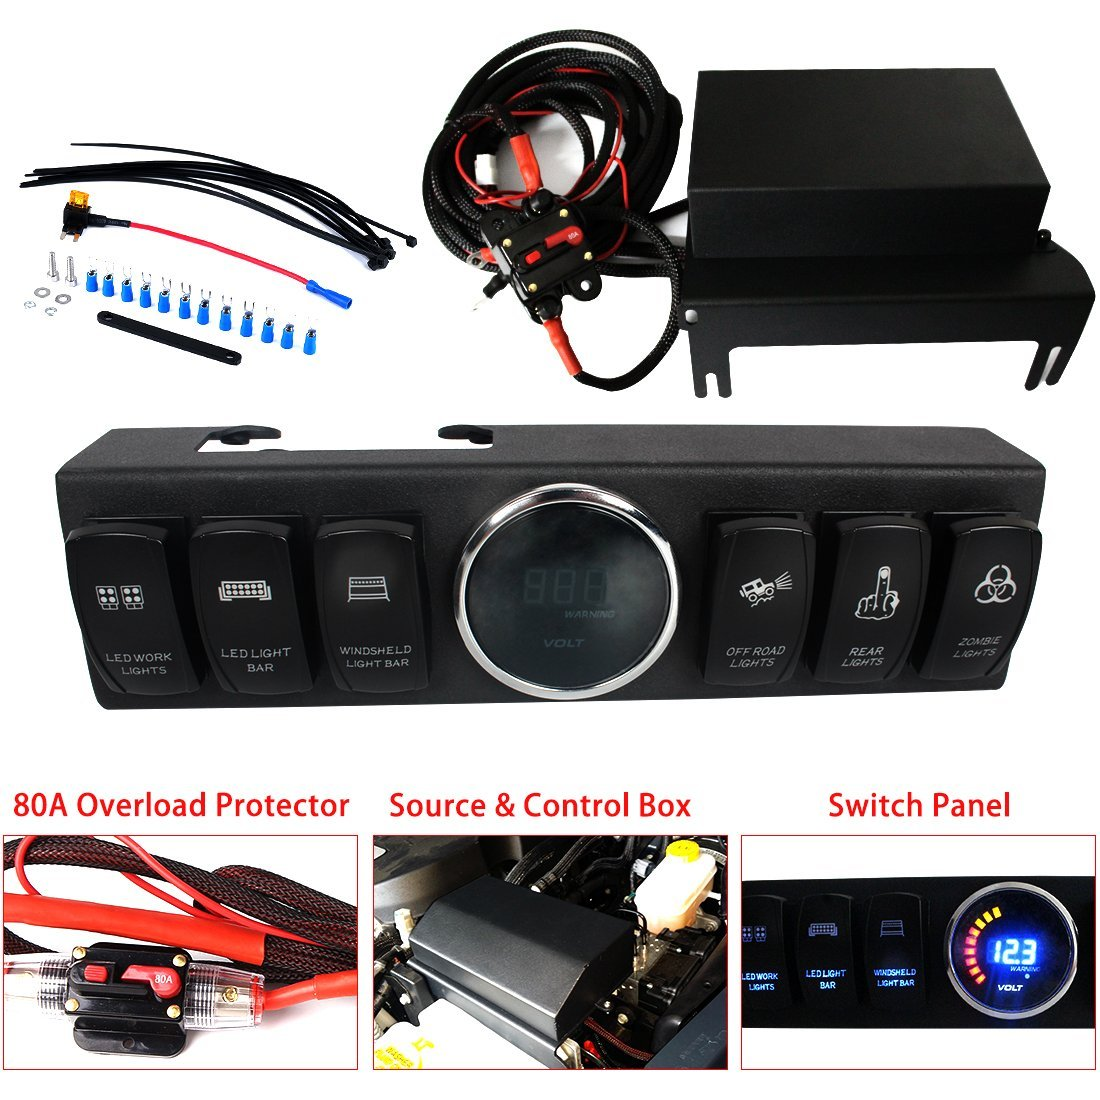 Firebug 6 Switch Panel Wiring Kit For 07 16 Jeep Wrangler Petrol Up Led Work Lights Version